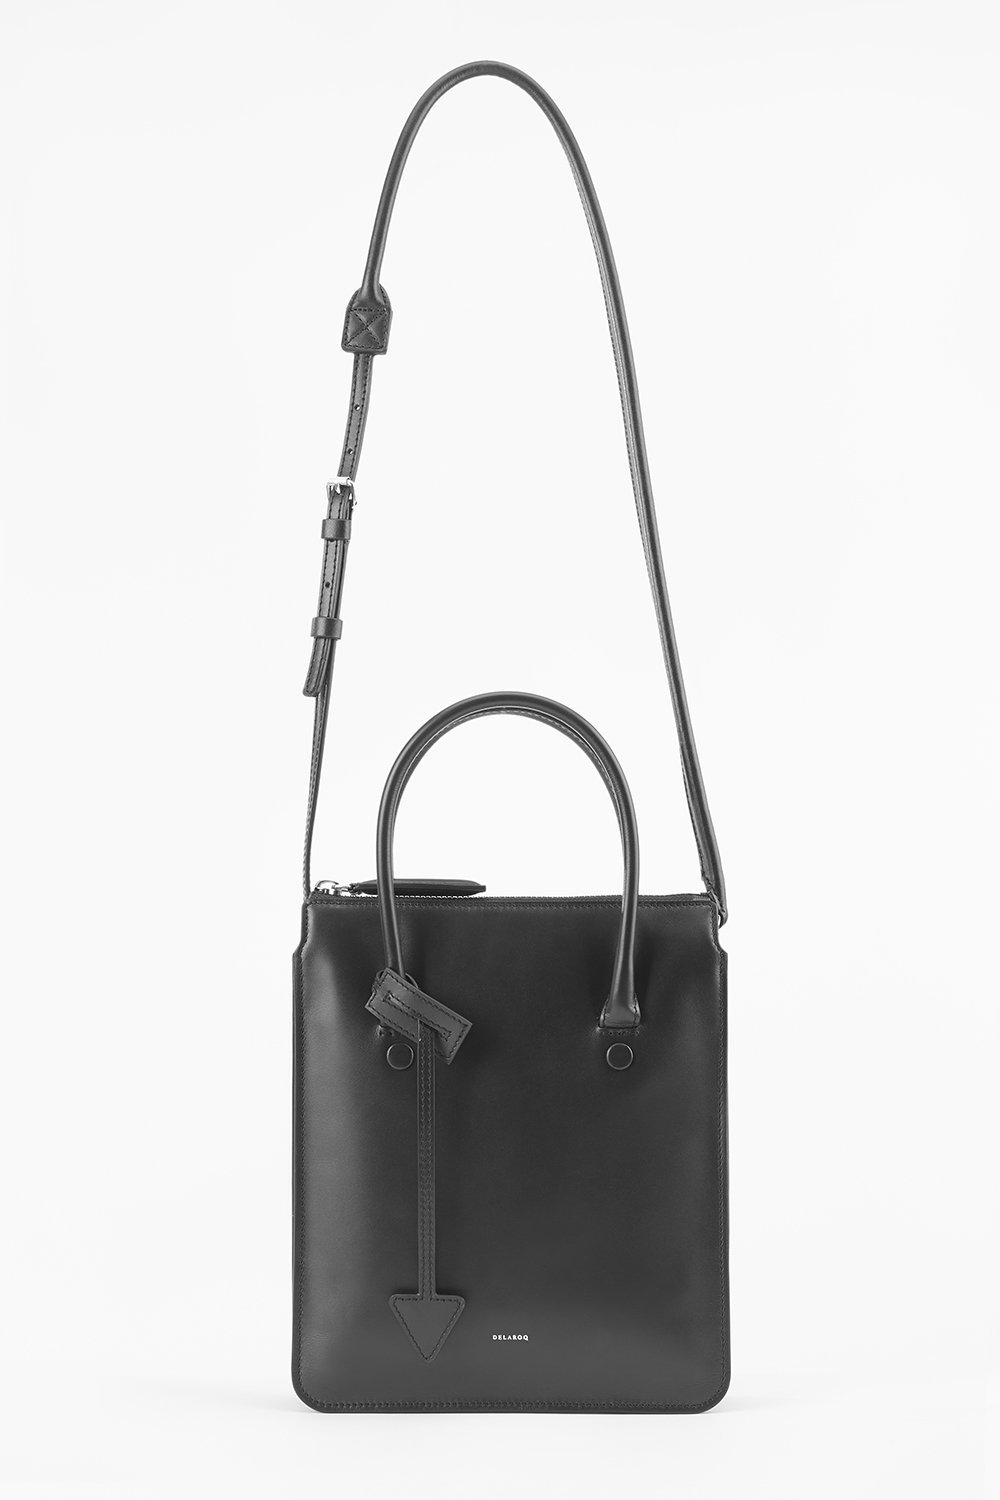 classic black leather tote bag with top handle